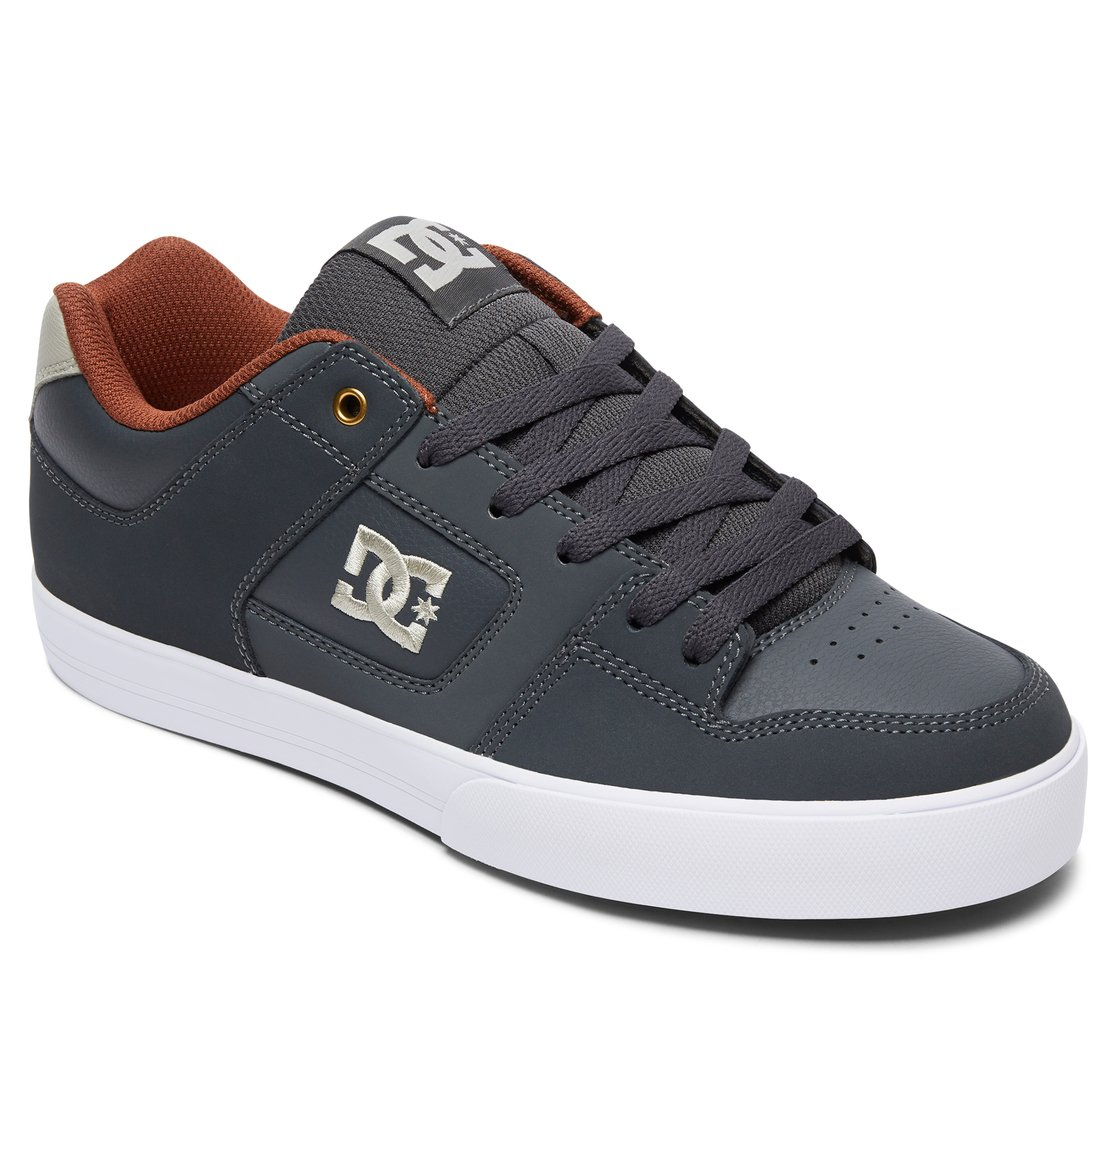 DC Shoes Men's Pure M Low Top Shoes White Black (XKWK) 8 kwGmyz